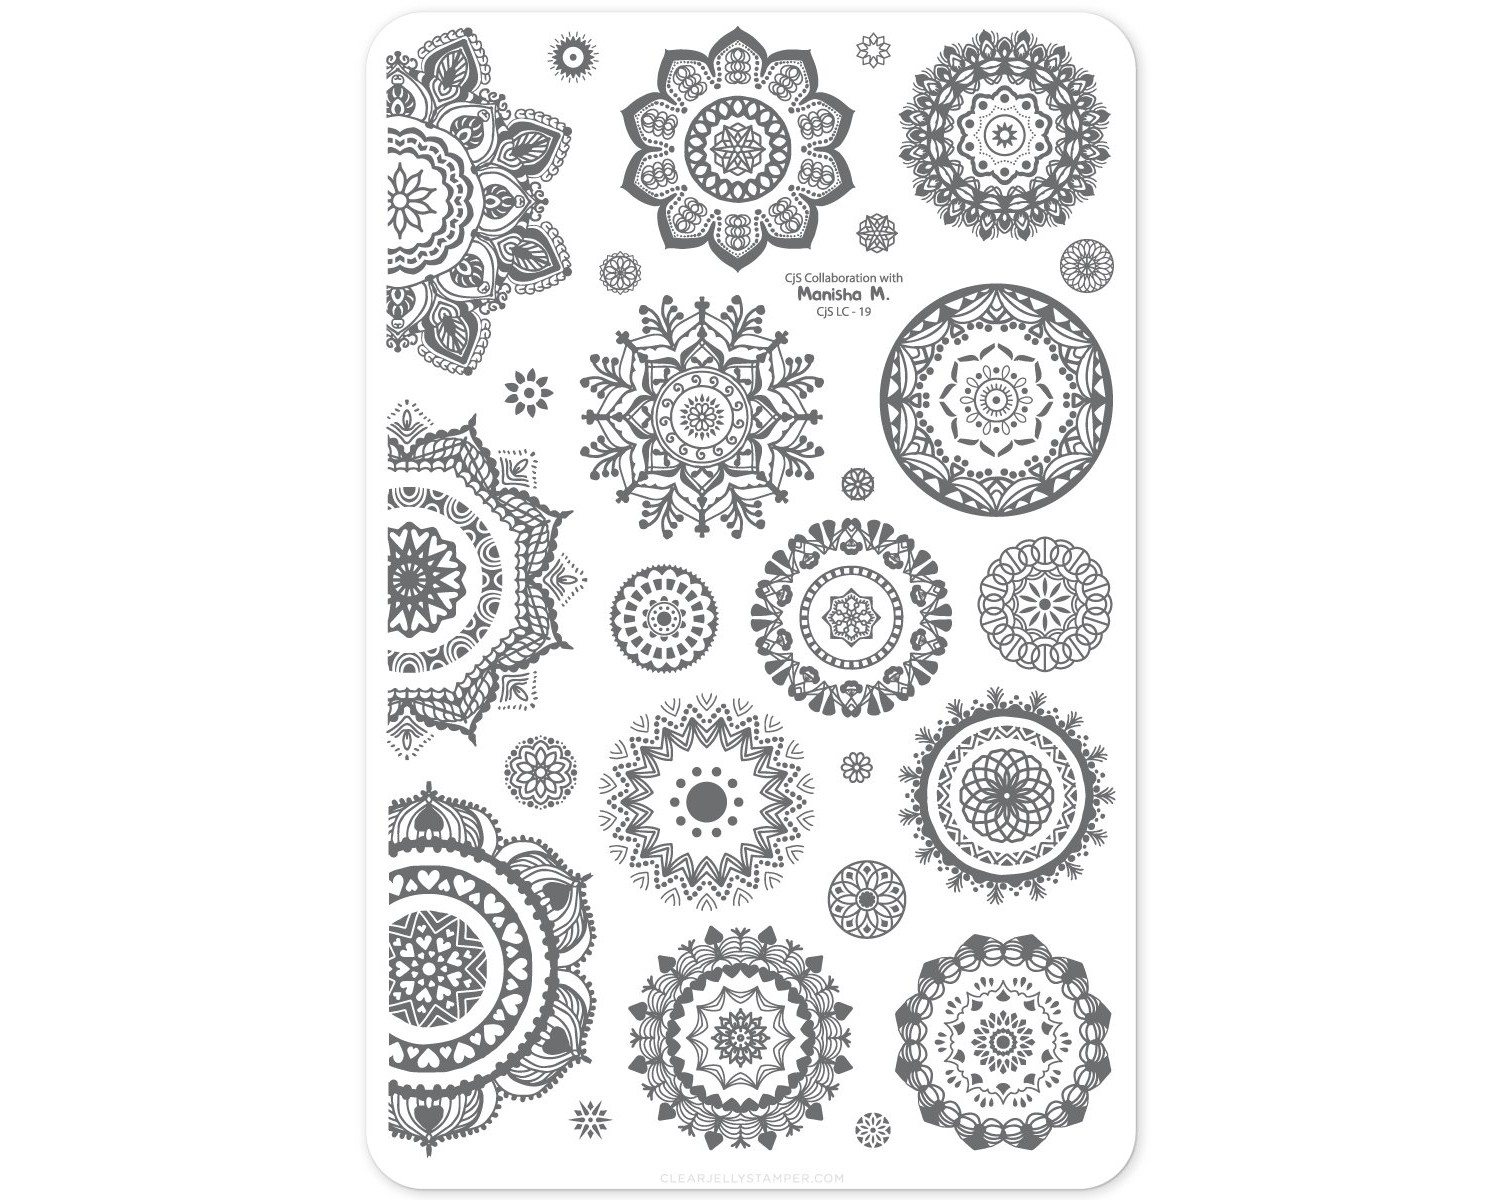 Clear Jelly Stamper - Manishas Mandalas